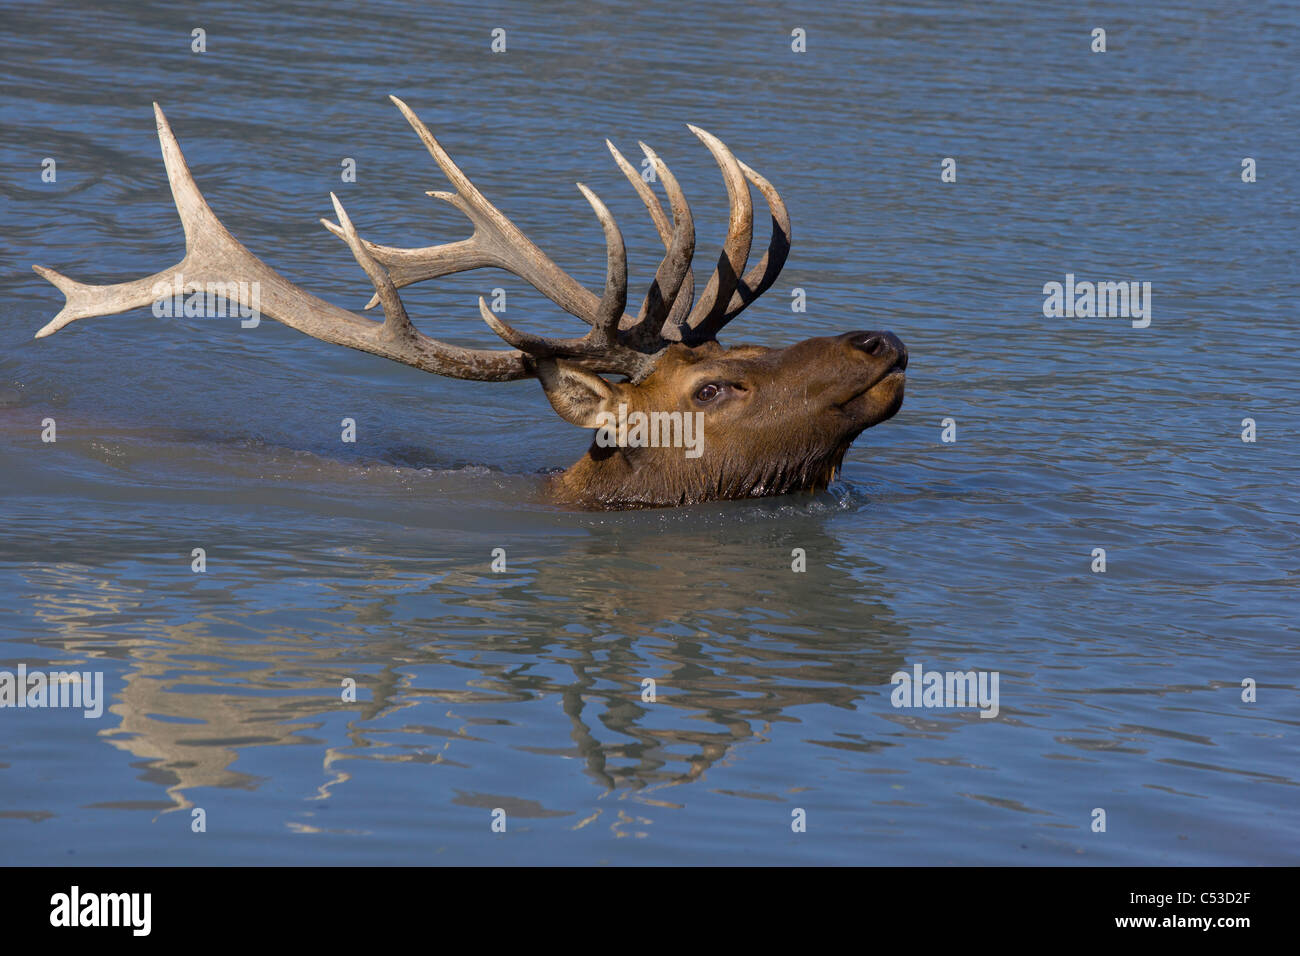 An adult Roosevelt bull elk swims across a pond with his head and antlers above water at the near Portage, Alaska. - Stock Image